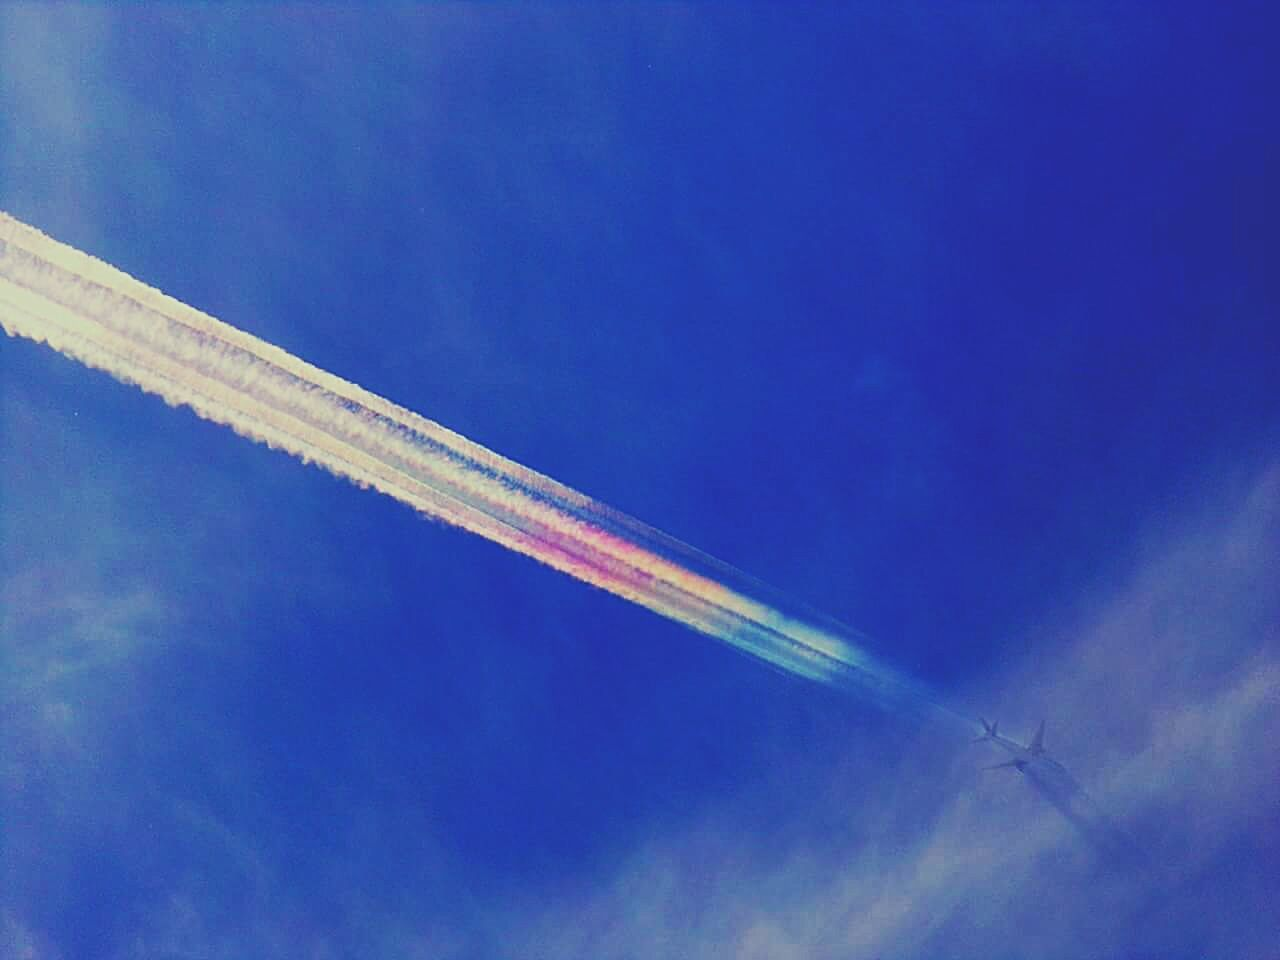 vapor trail, low angle view, airplane, blue, transportation, contrail, flying, air vehicle, sky, journey, no people, day, airshow, outdoors, nature, fighter plane